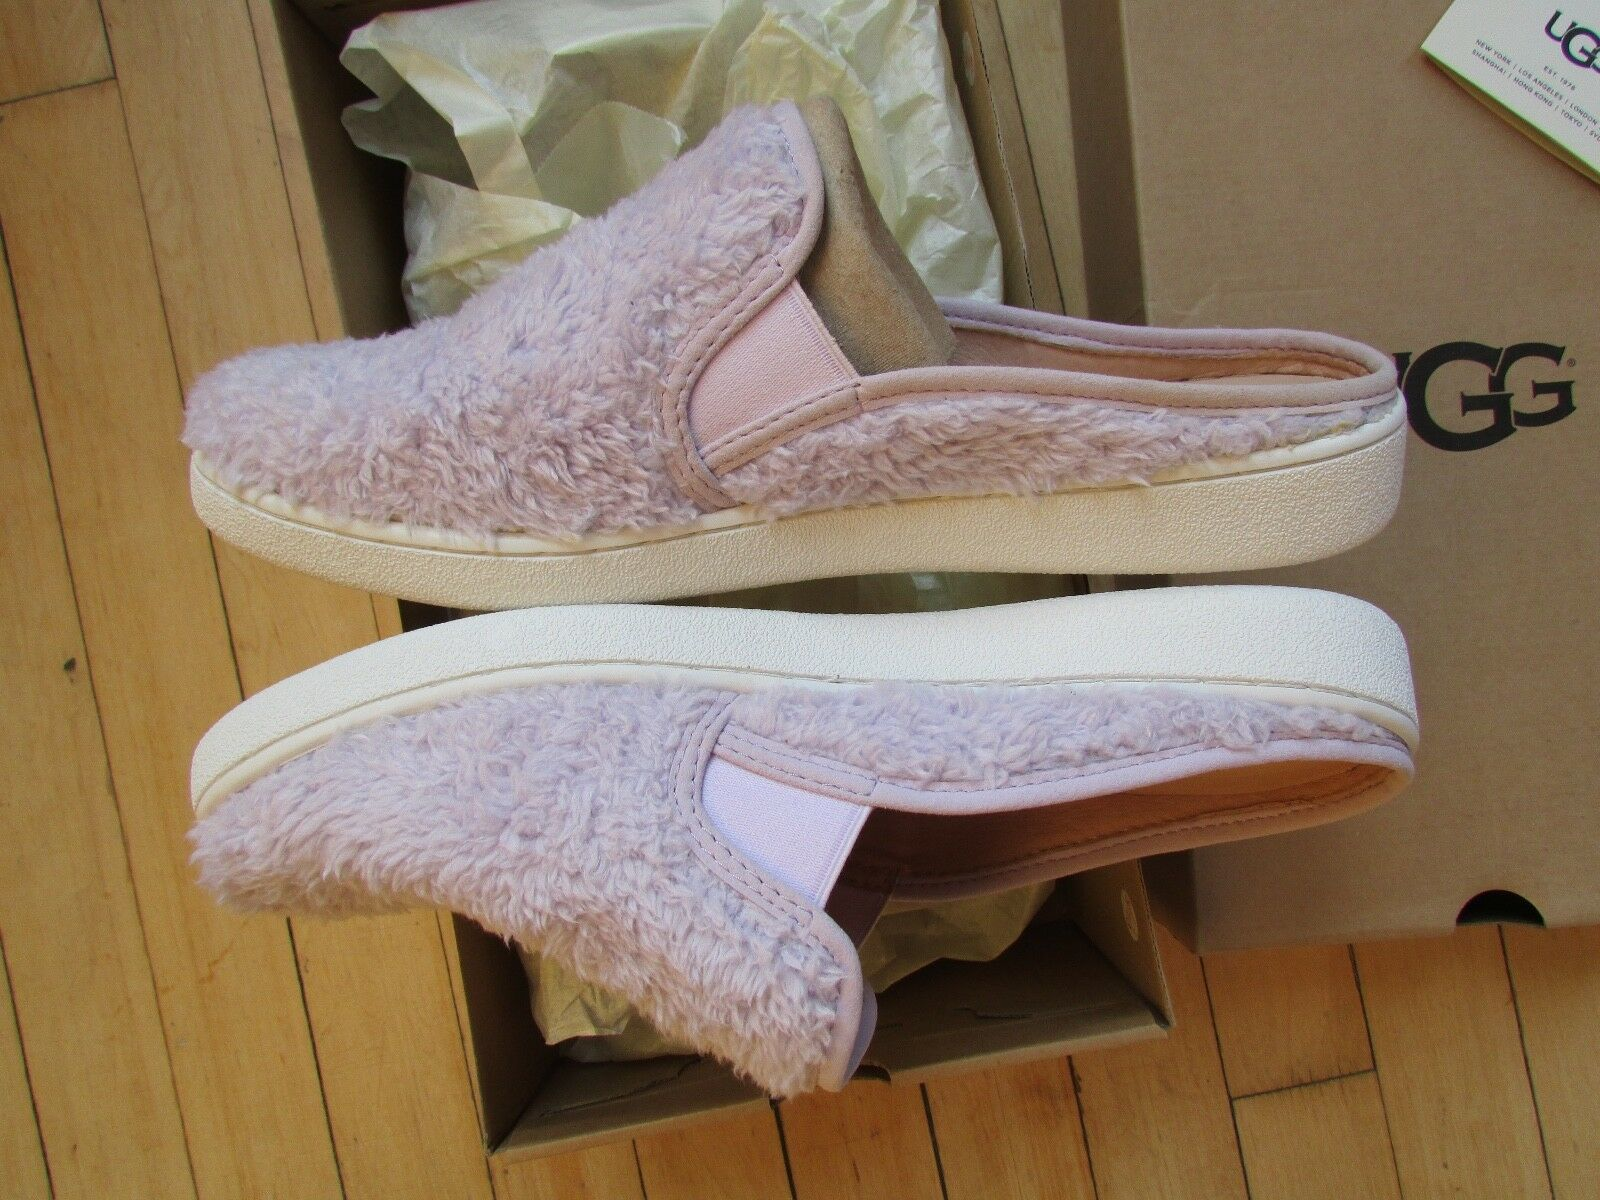 UGG Slippers Luci Slip On Sneakers Lavender fog Size 11 NEW image 3